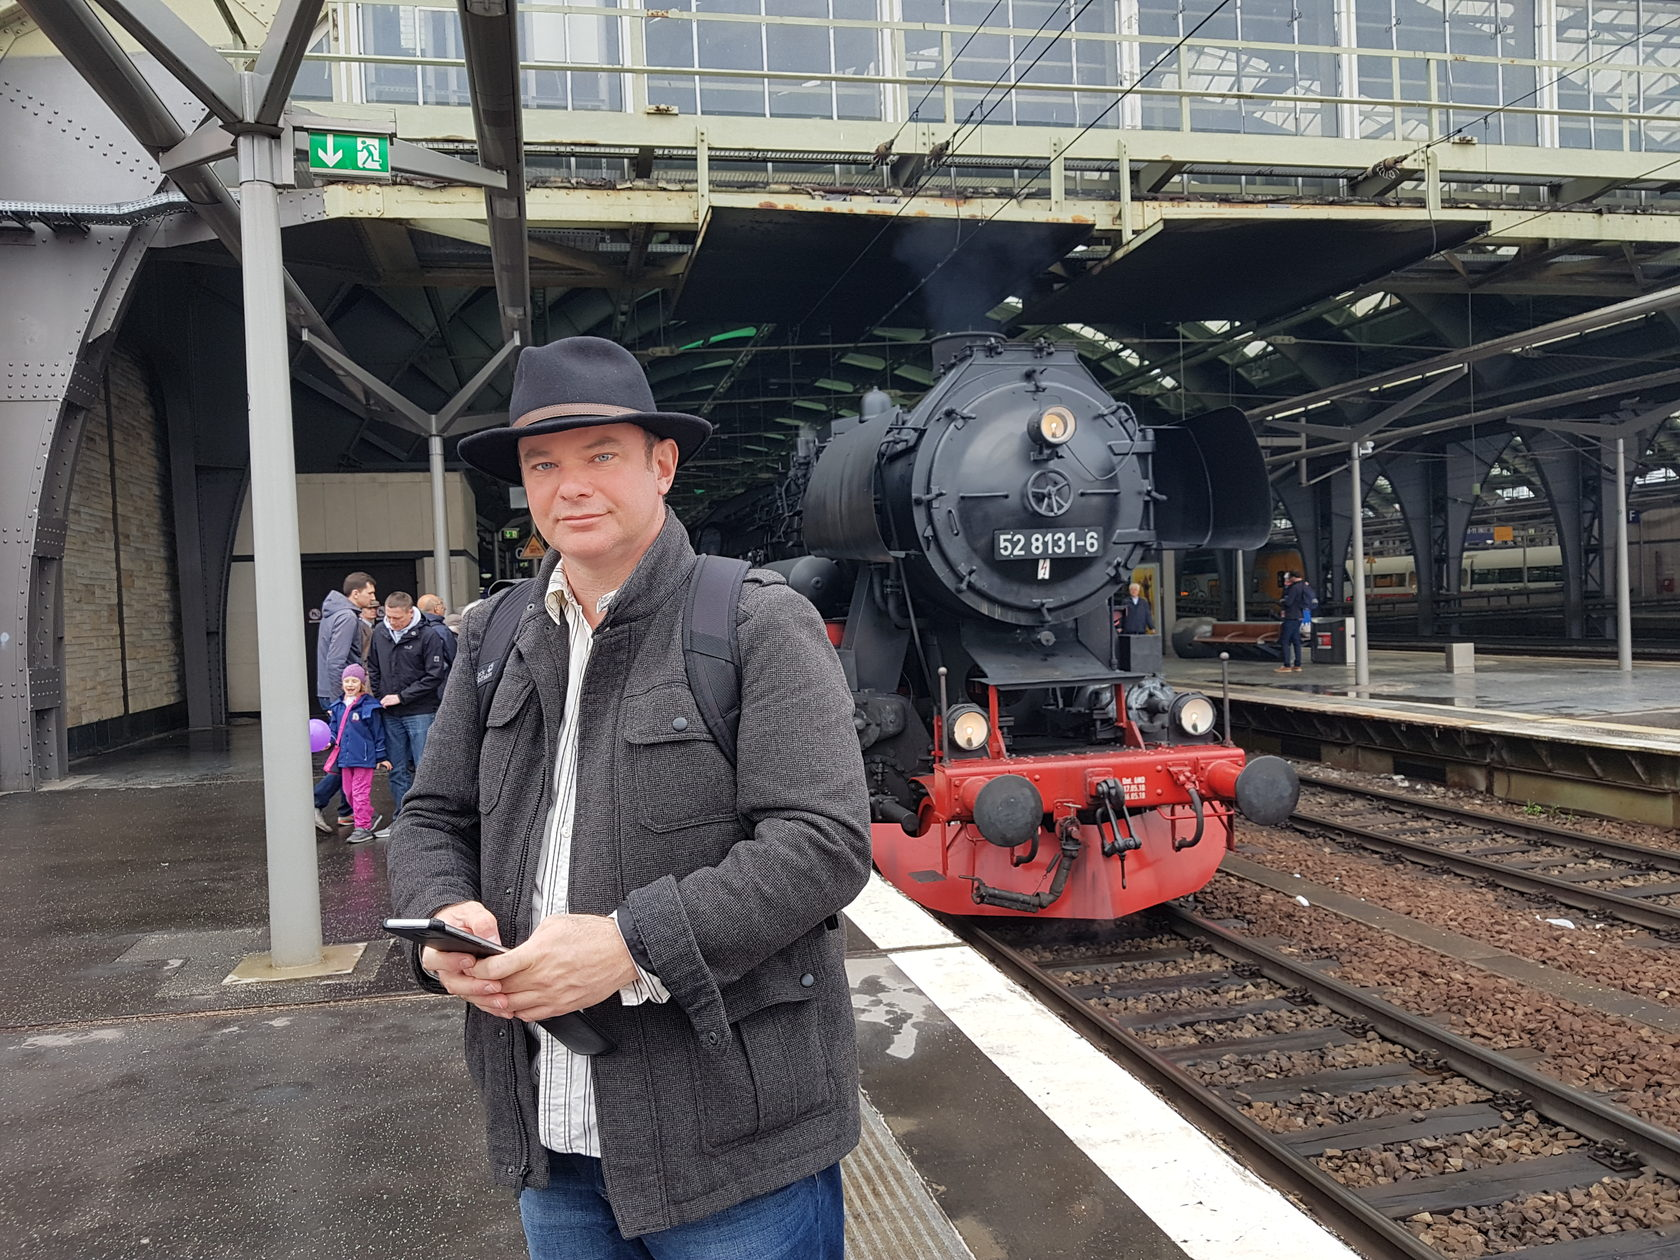 Steaming Into Berlin's Past